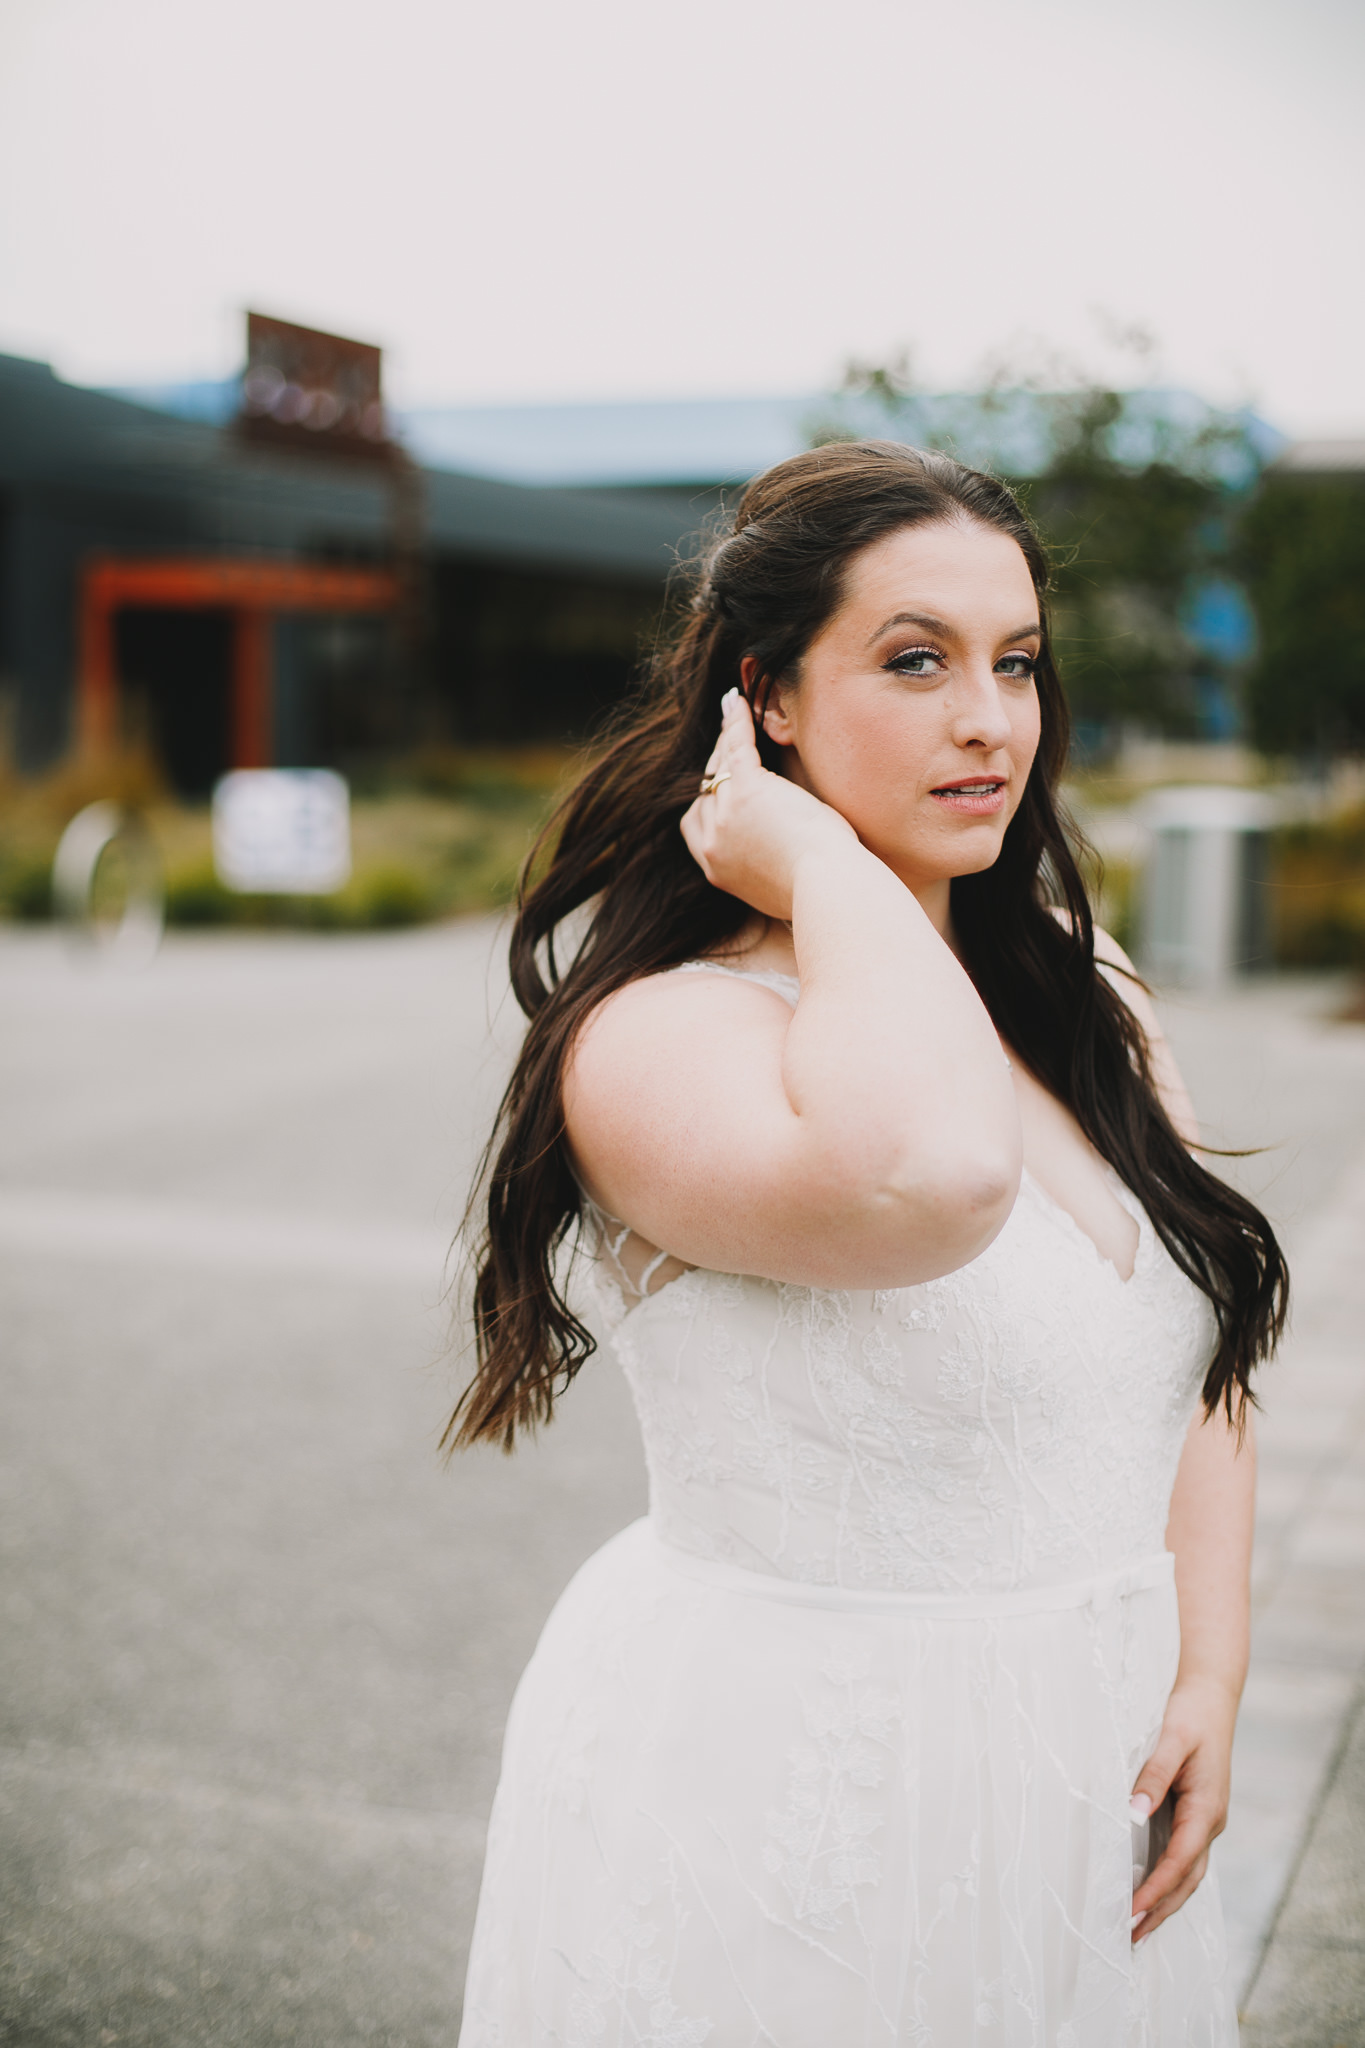 Archer Inspired Photography Shelby and Ben Wedding Sally Tomatoes NorCal Rohnert Park California-105.jpg